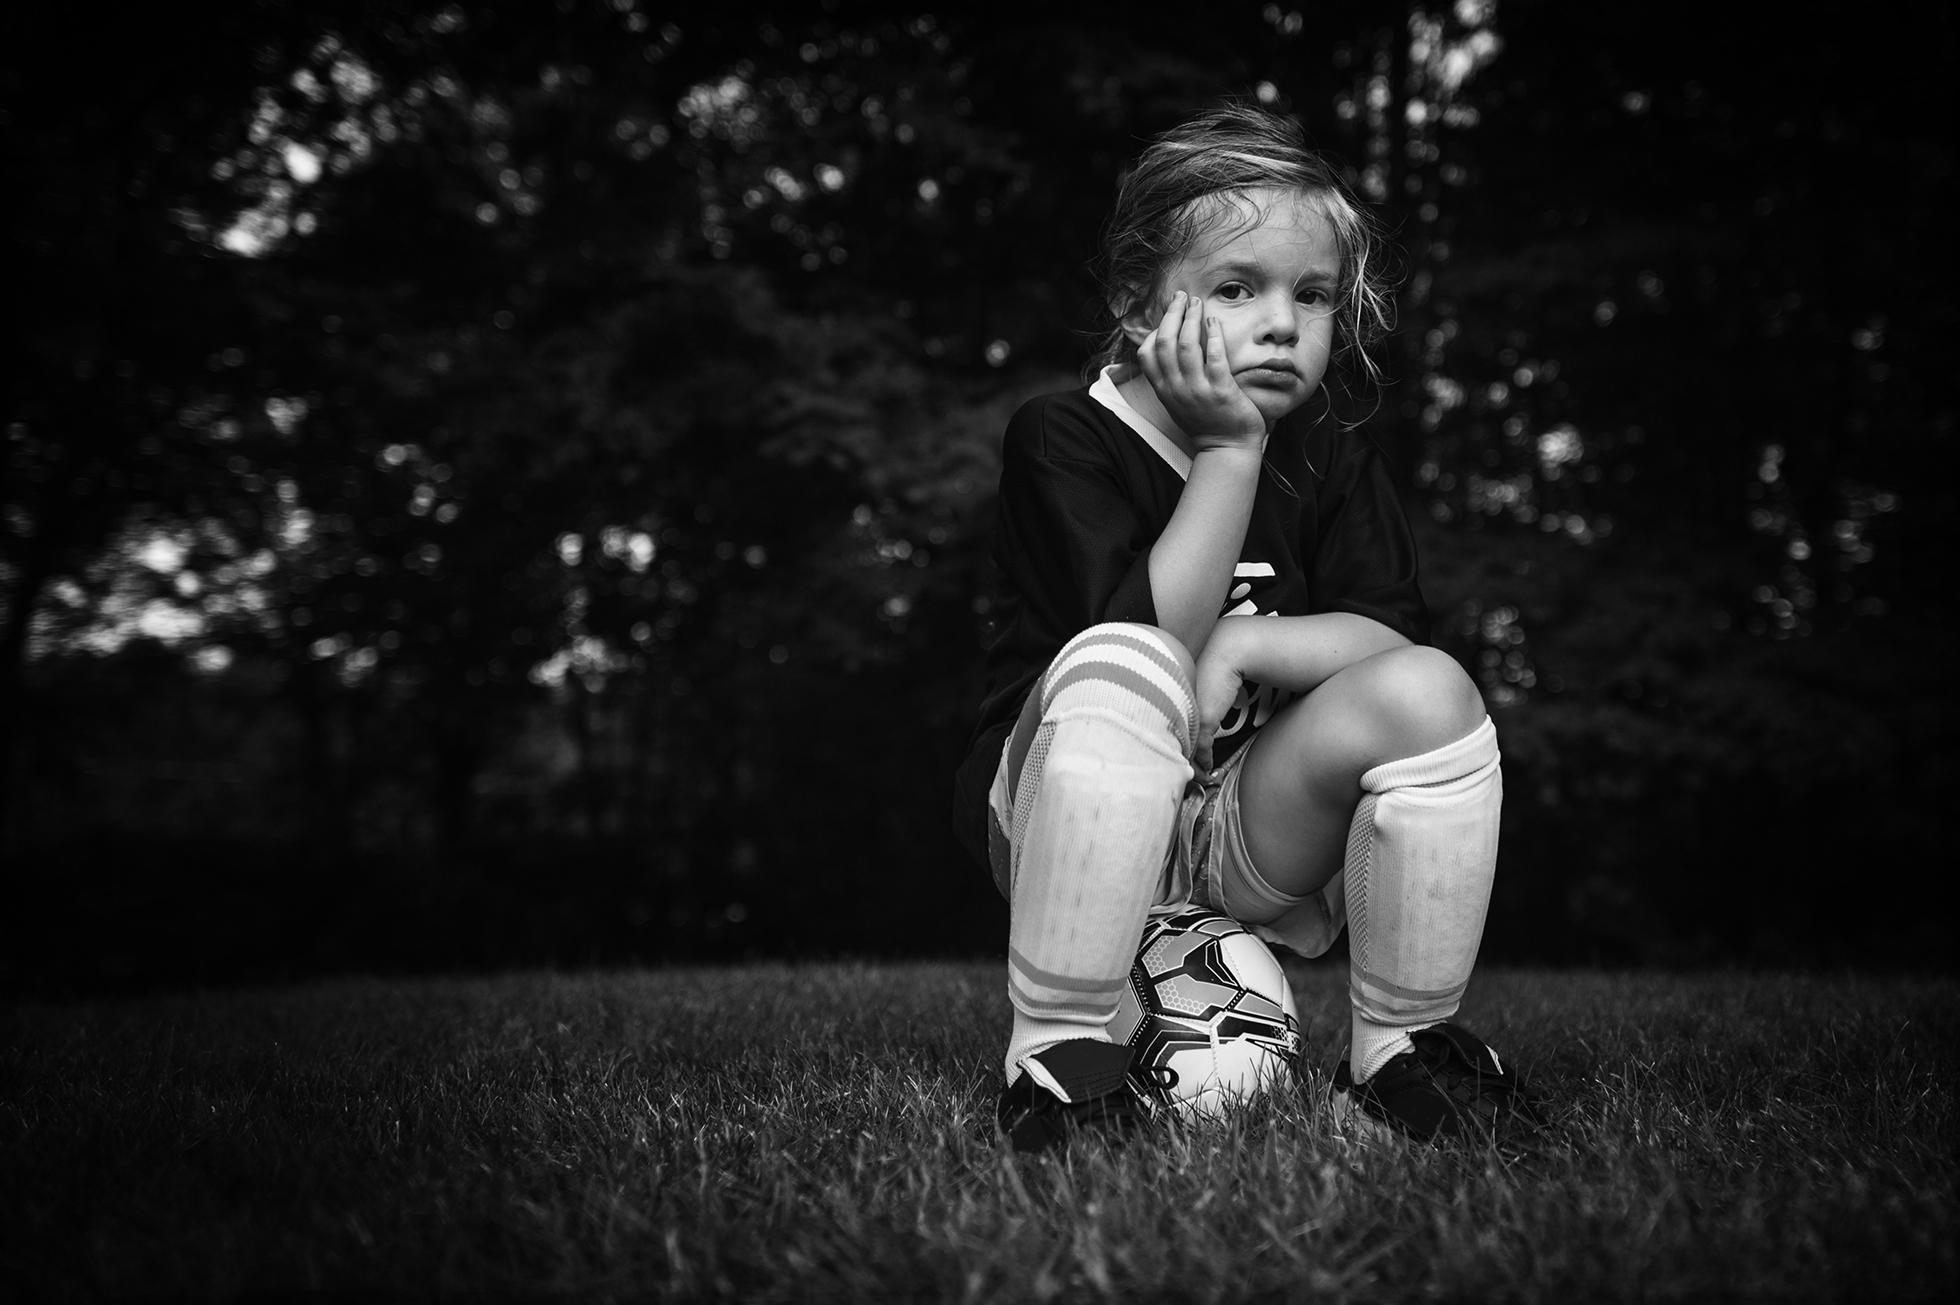 photographing kids sports black and white photo of a girl sitting on a soccer ball by kellie bieser